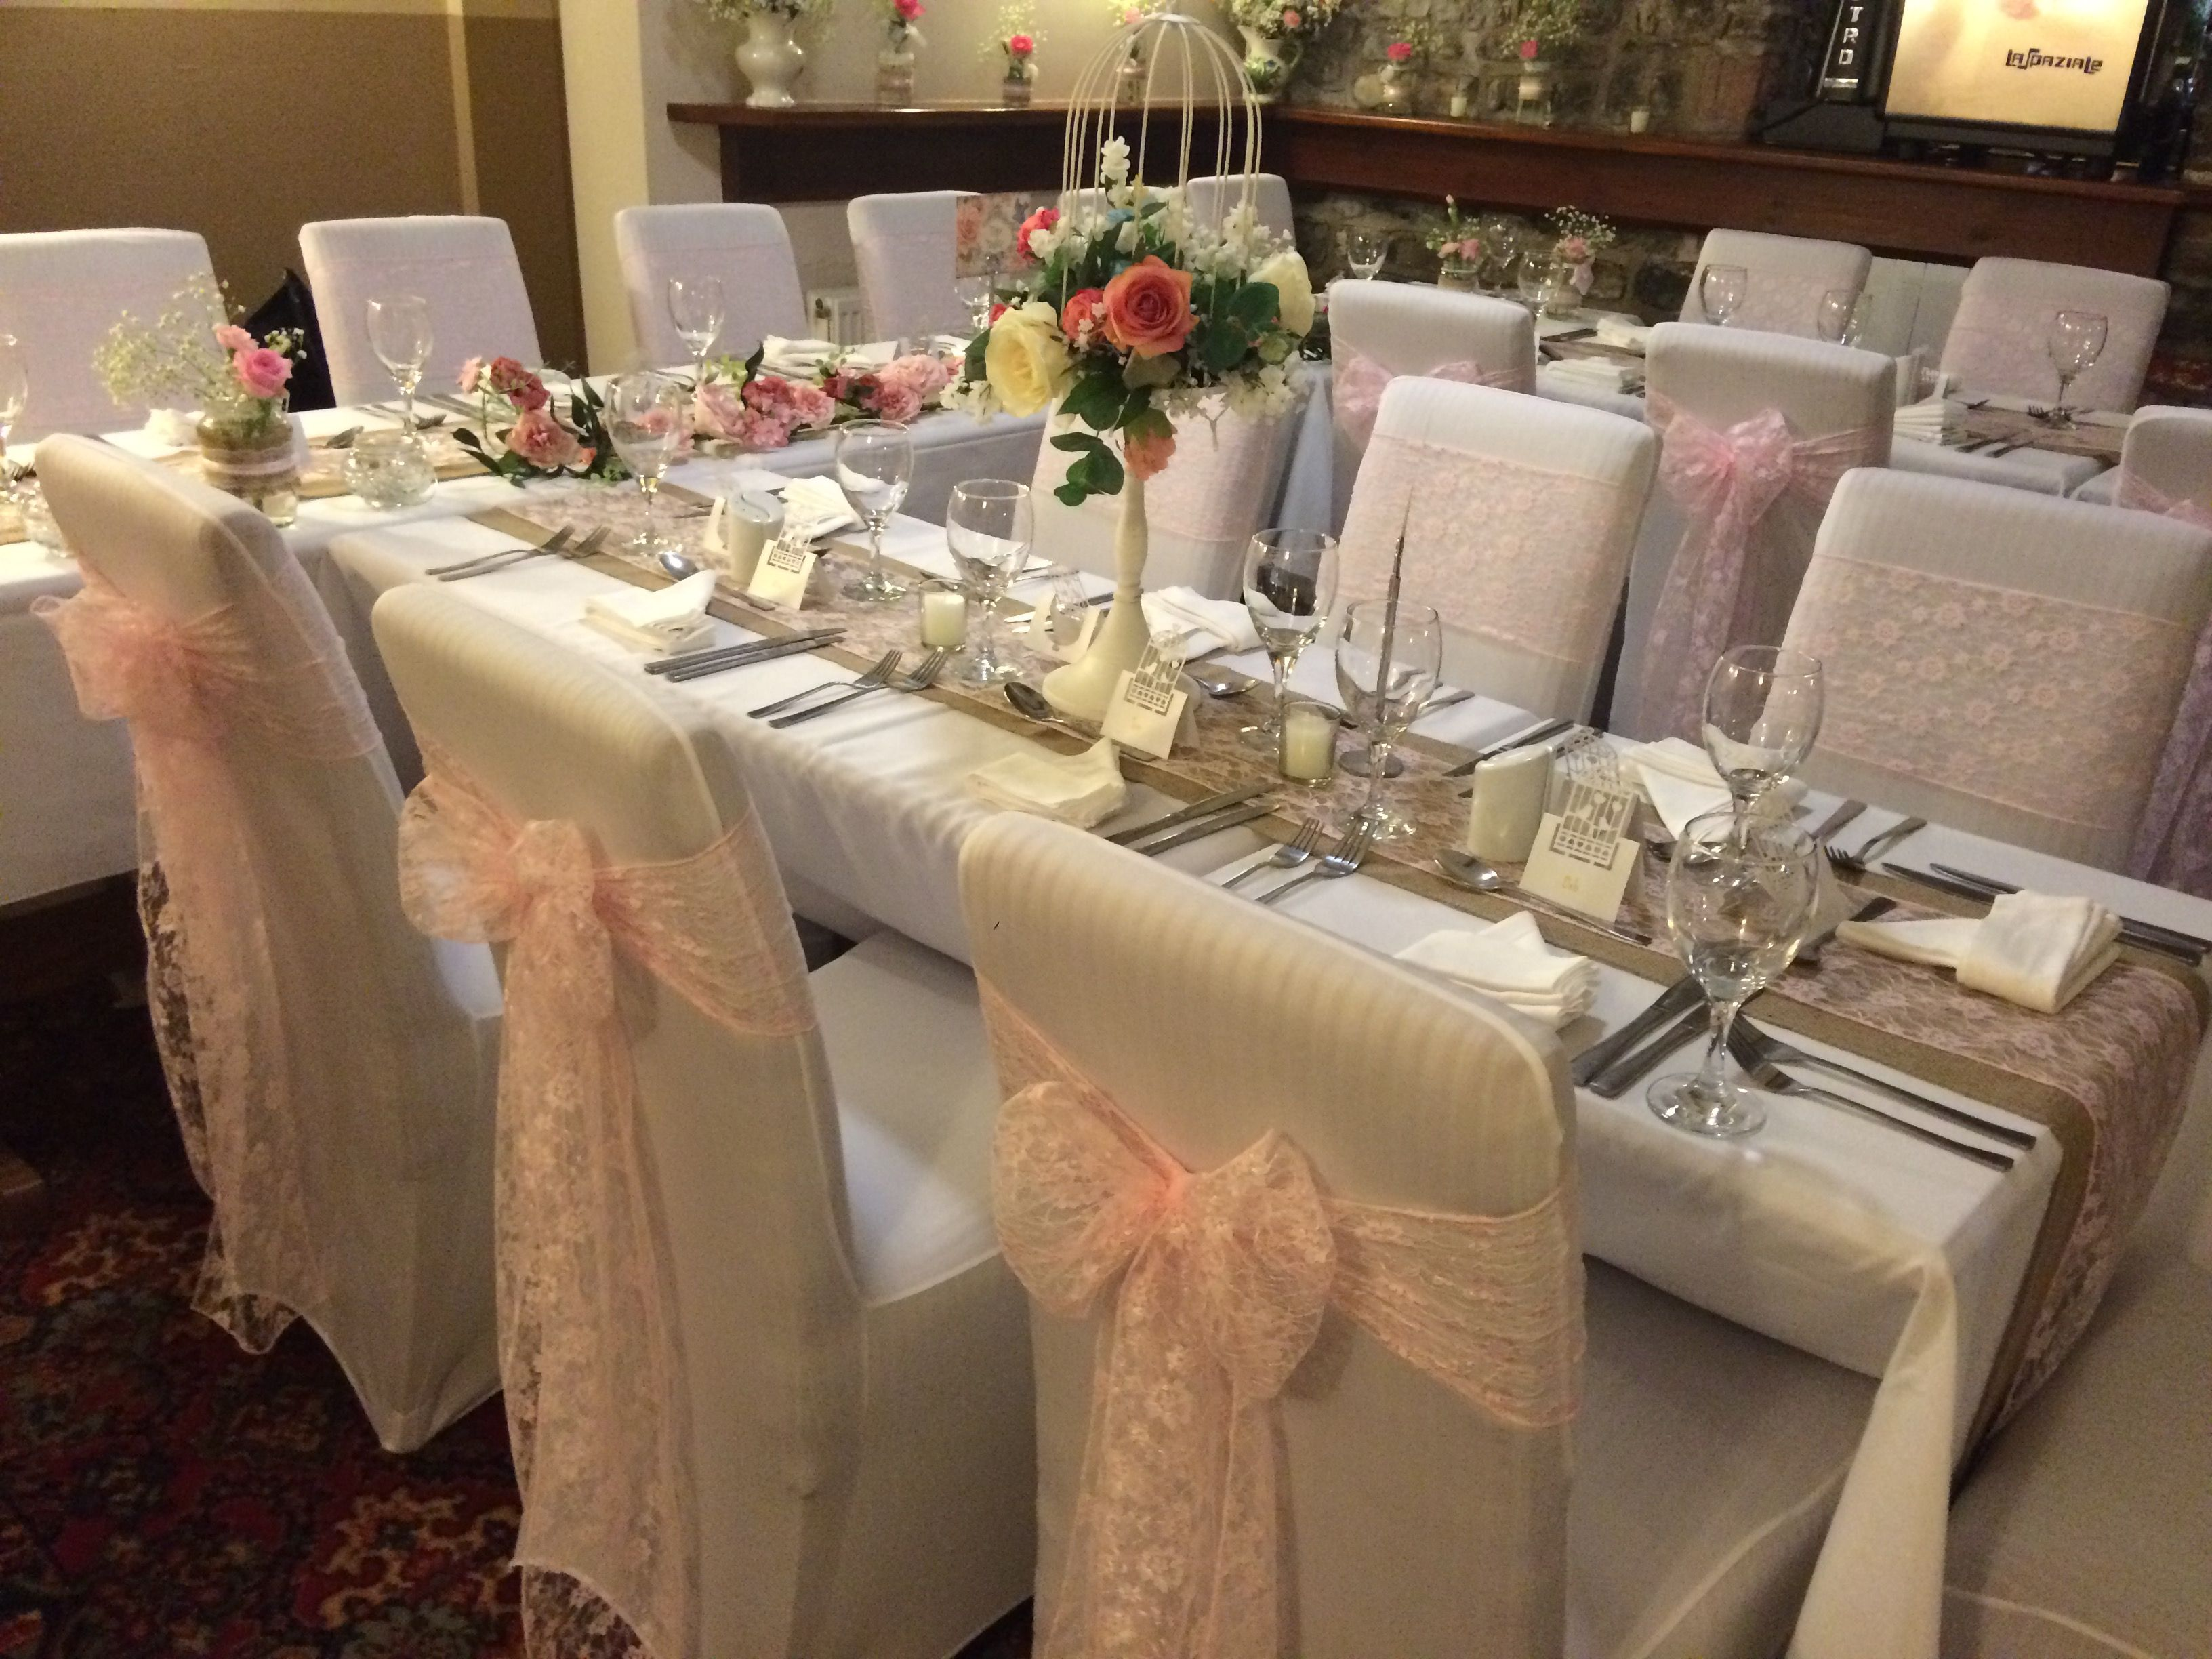 Chair Covers For Hire South Wales Kids Football White And Pink Lace Sashes Hessian Table